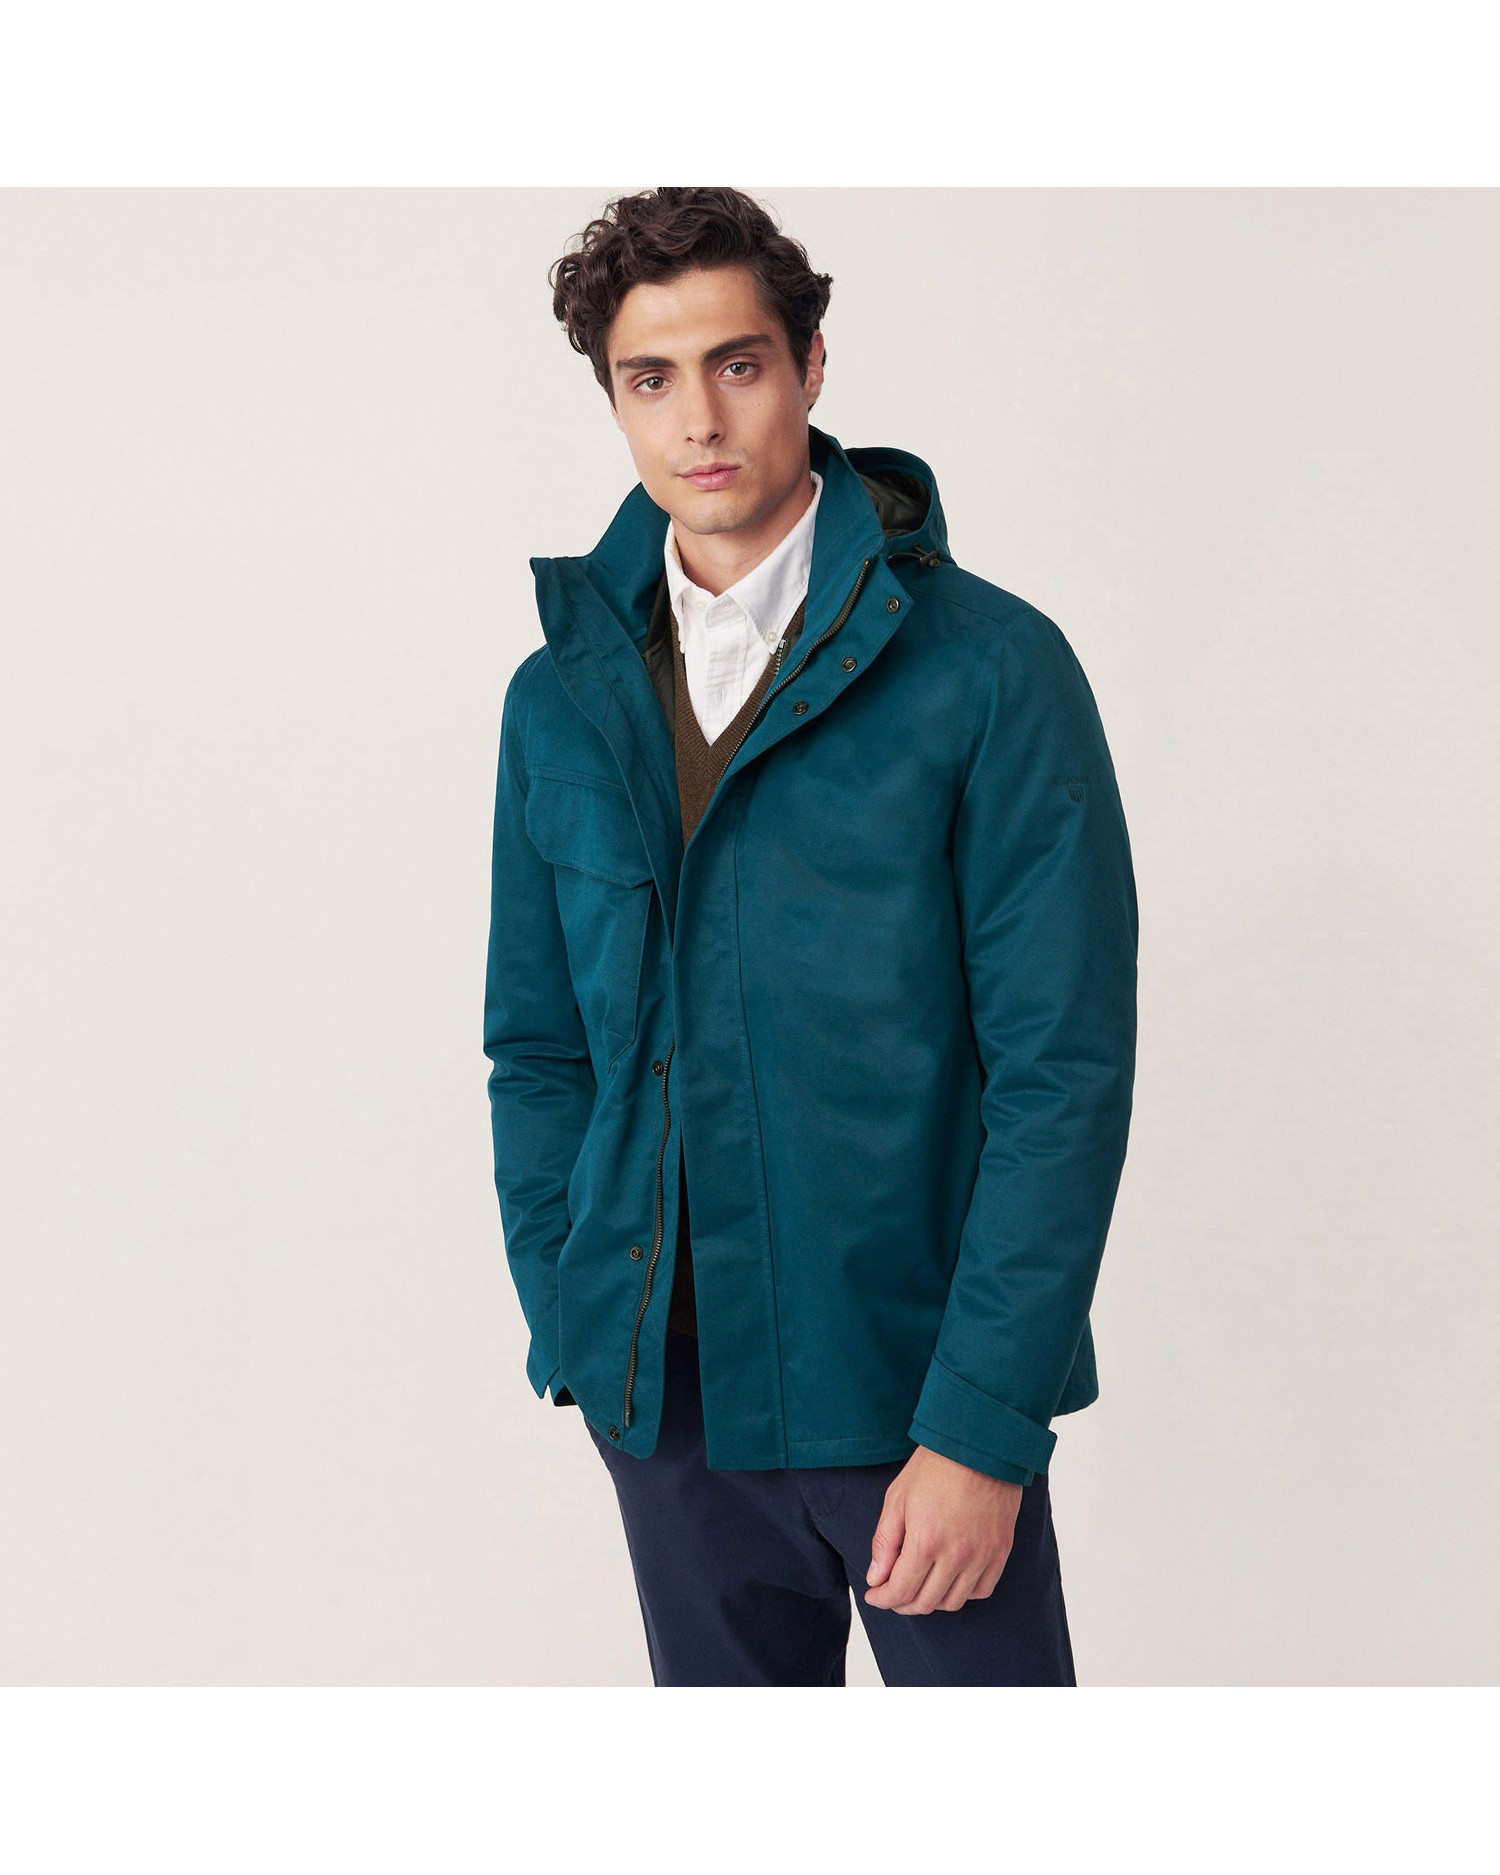 GANT Men's Tech Double Jacket - 7001546